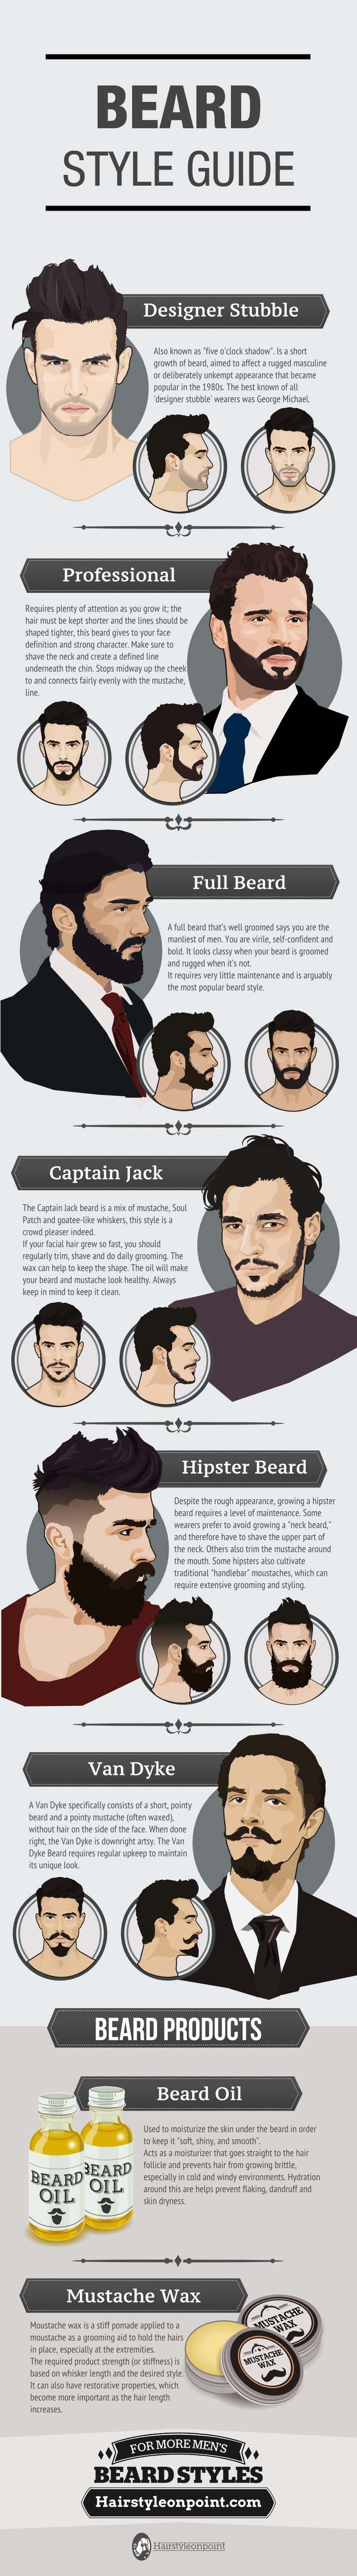 Mens haircut chart everything you need to know about growing u styling your beard